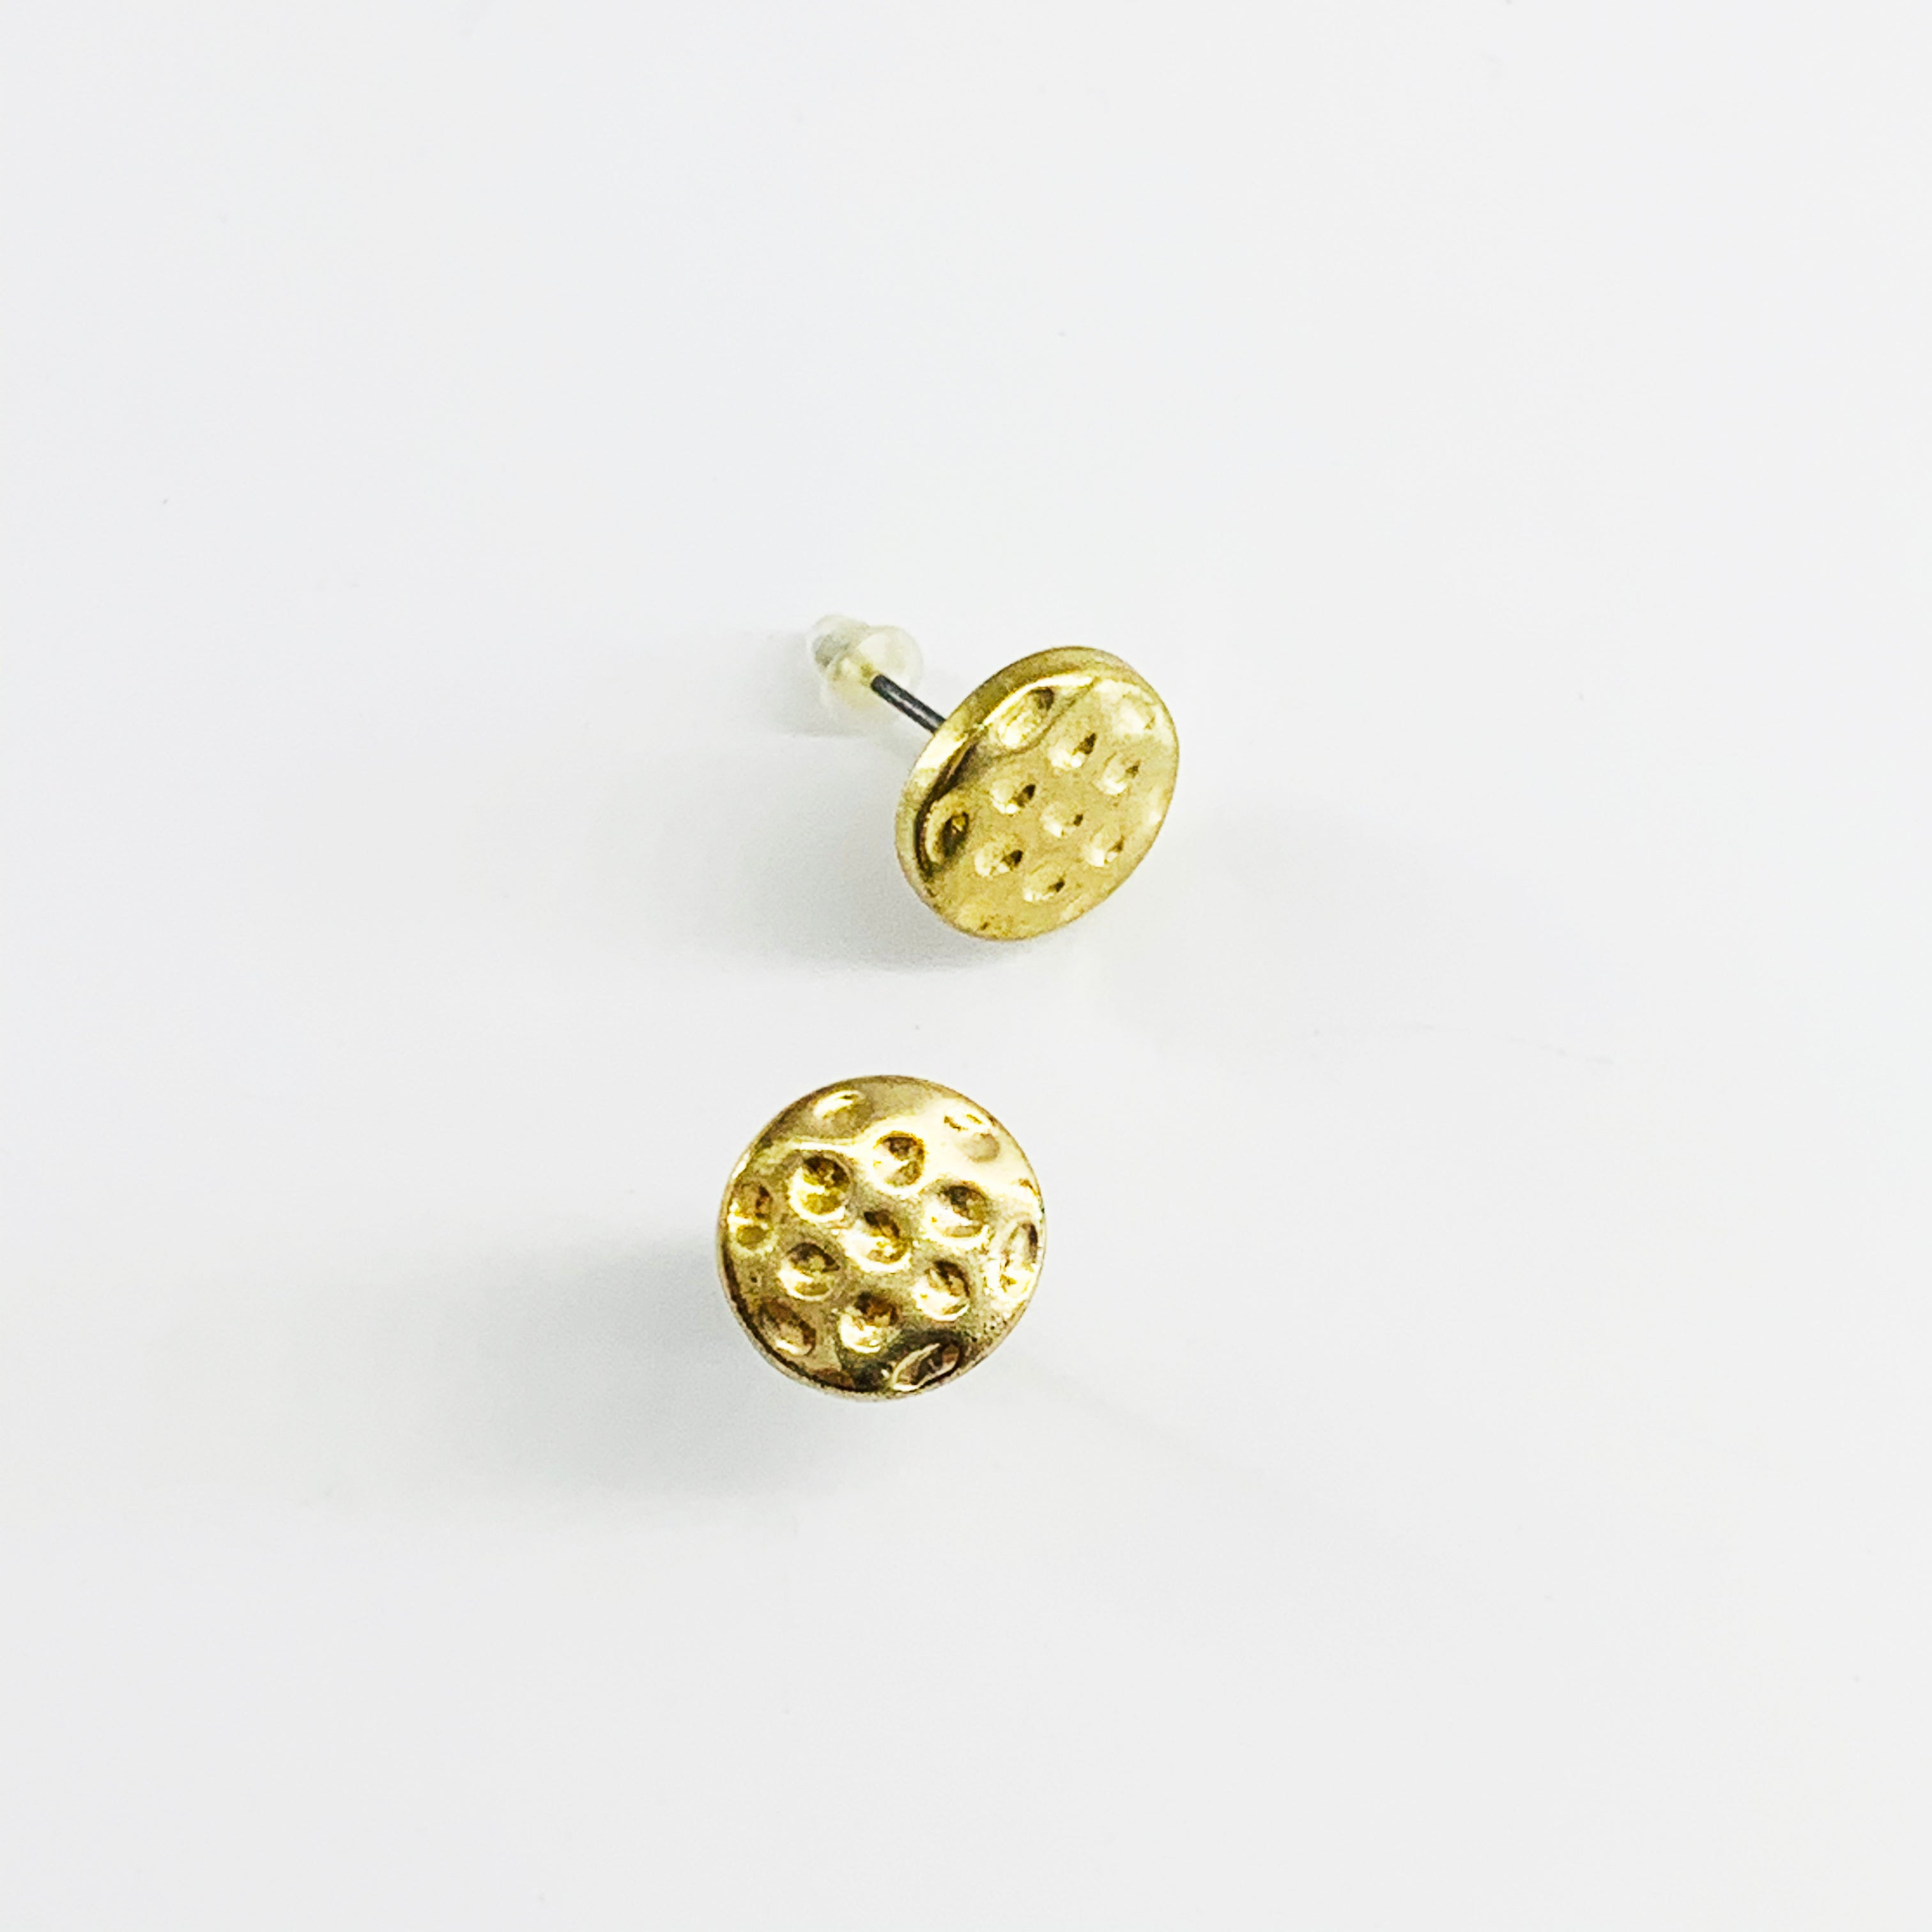 Textured gold disc ear studs